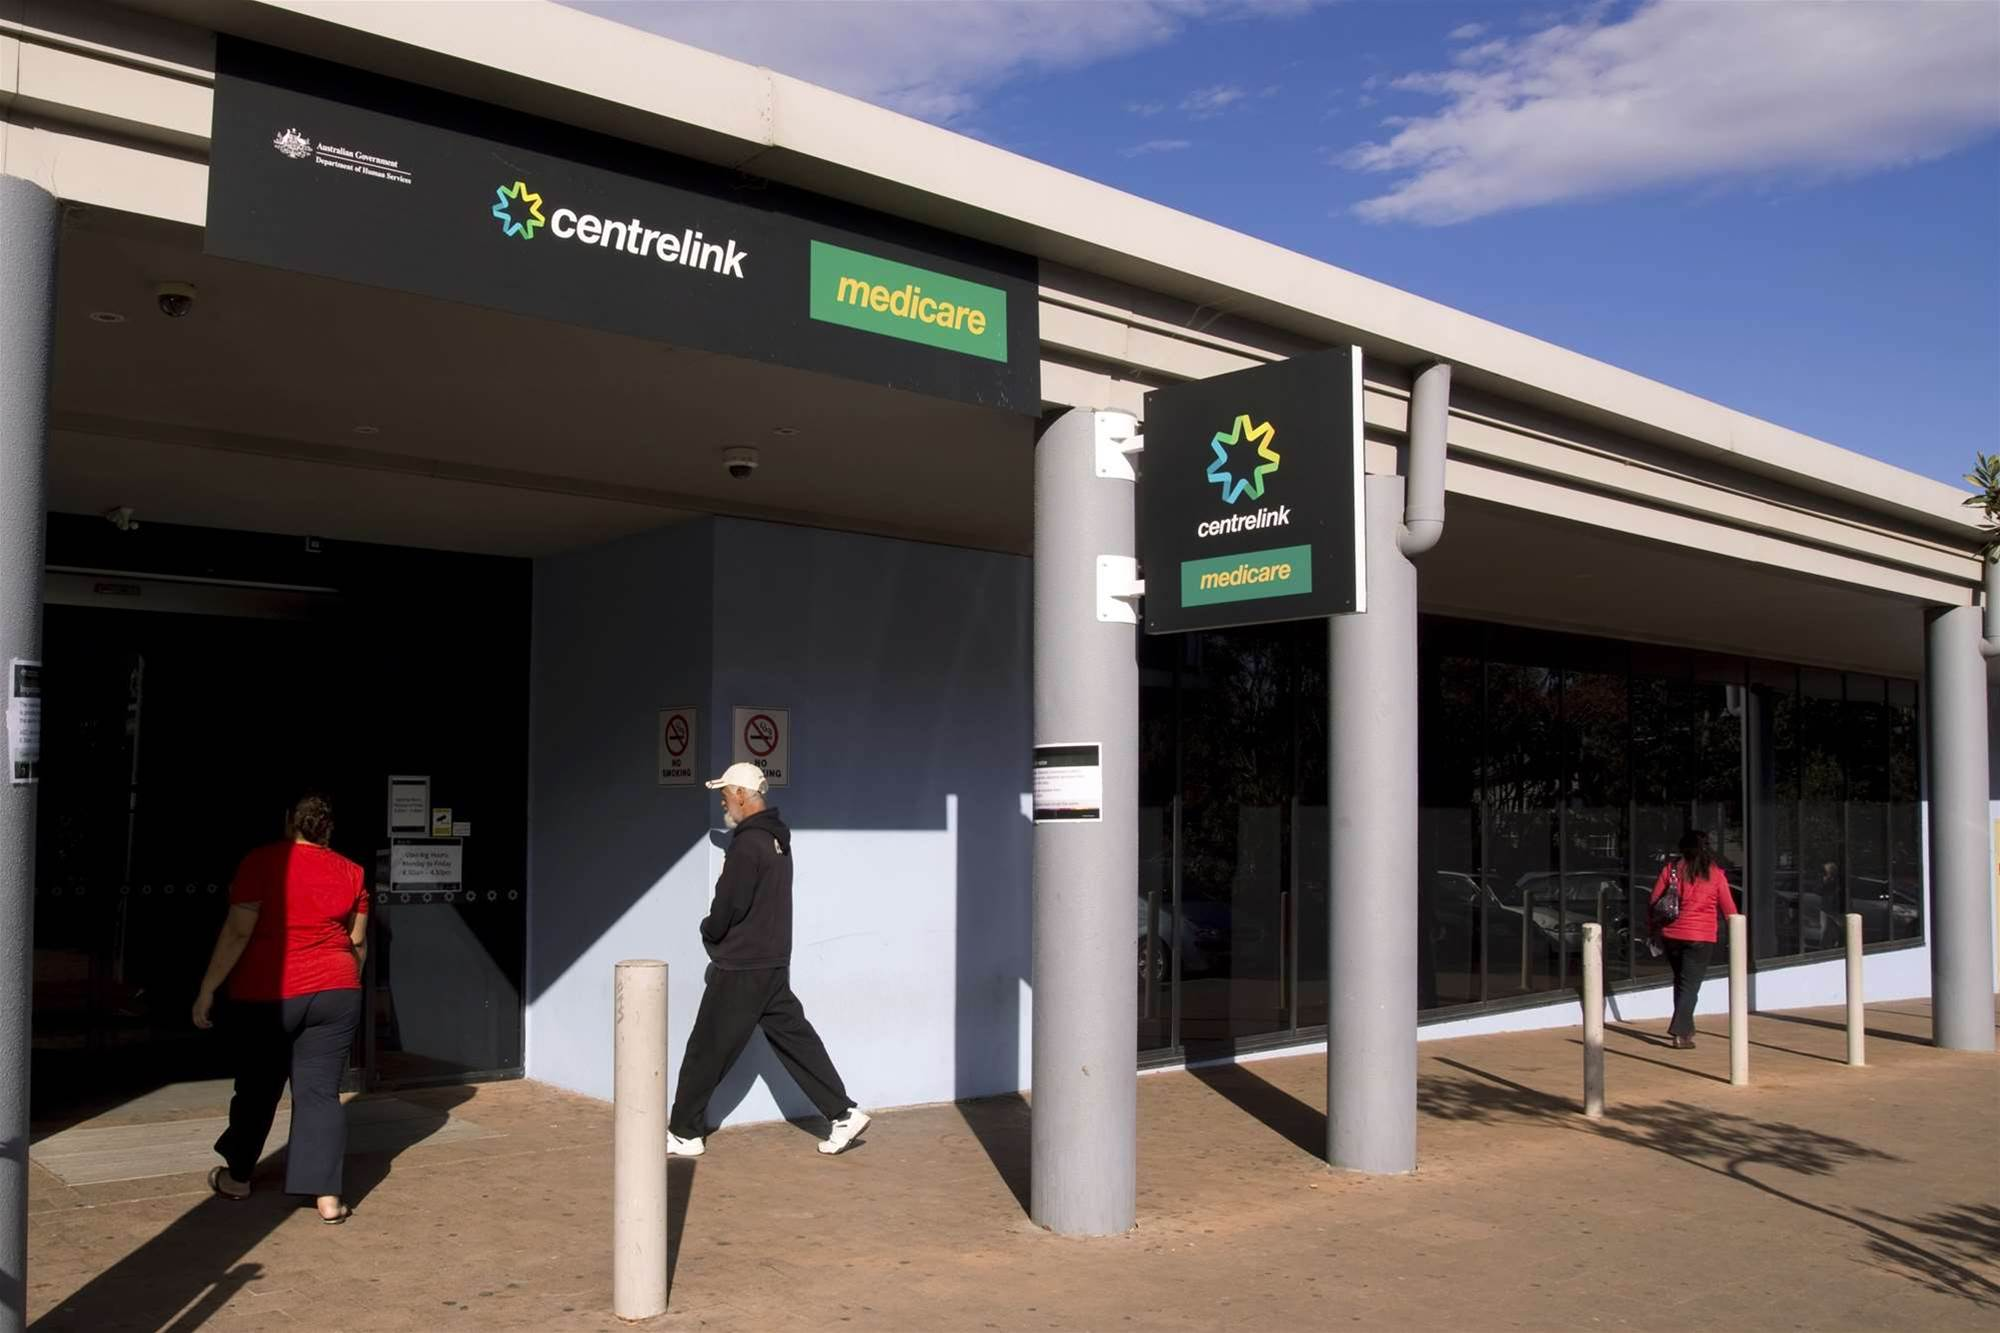 Human Services finally completes plan for free Centrelink wi-fi after 10 years